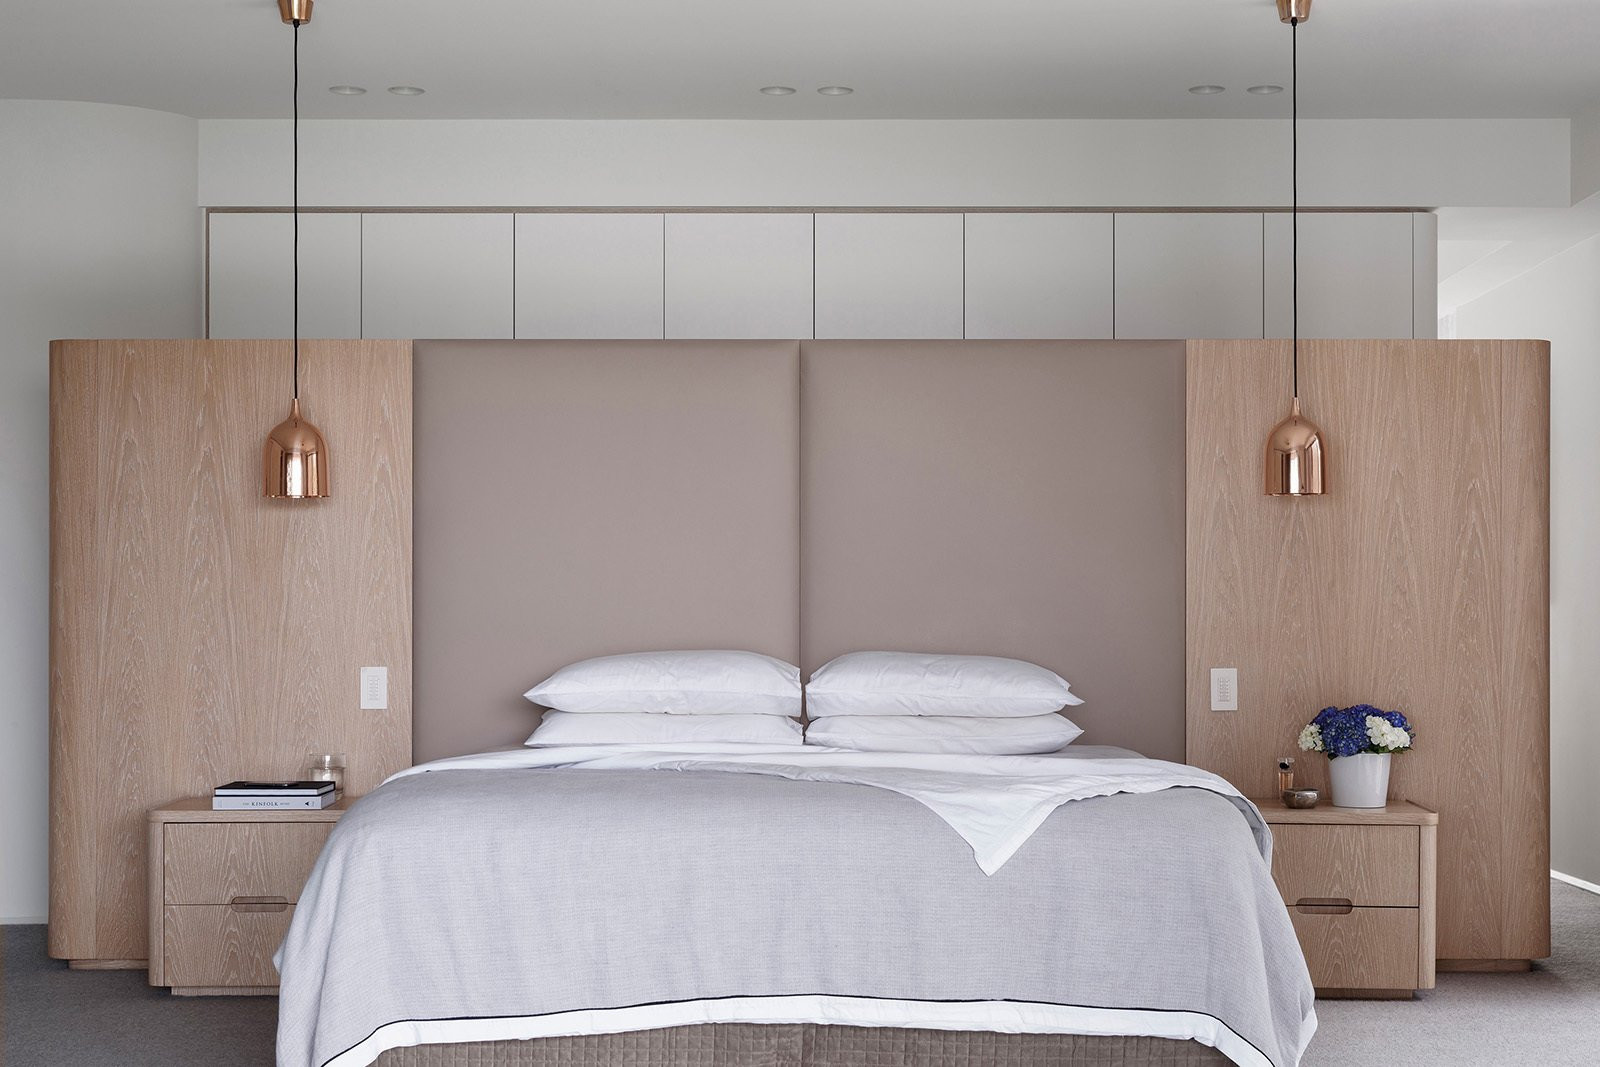 Ceiling Lights Bedroom  50 Bedroom Lighting Ideas For Your Ceilings Dwell